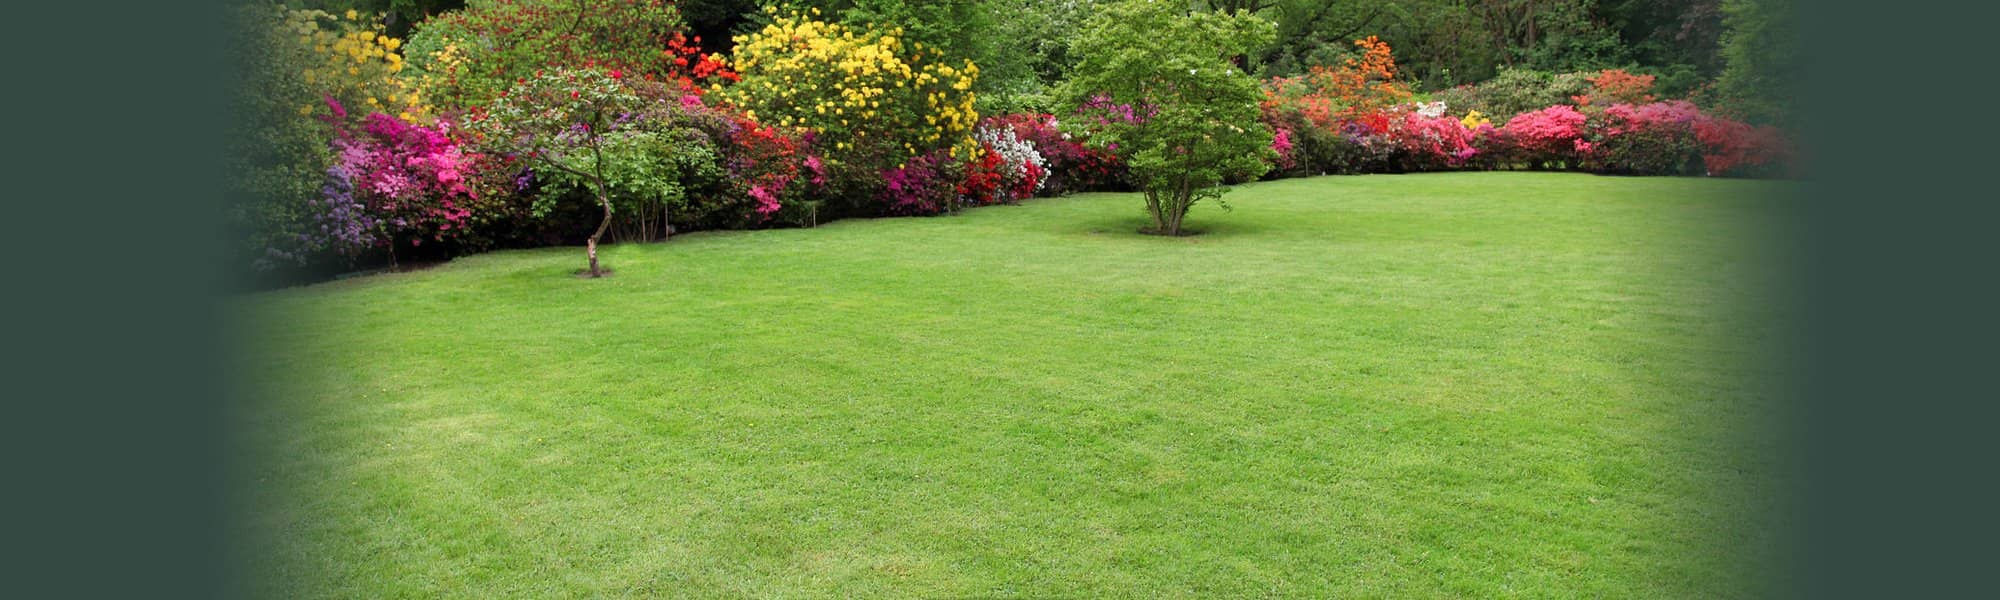 Residential Lawn Care & Turf Management in St. Louis